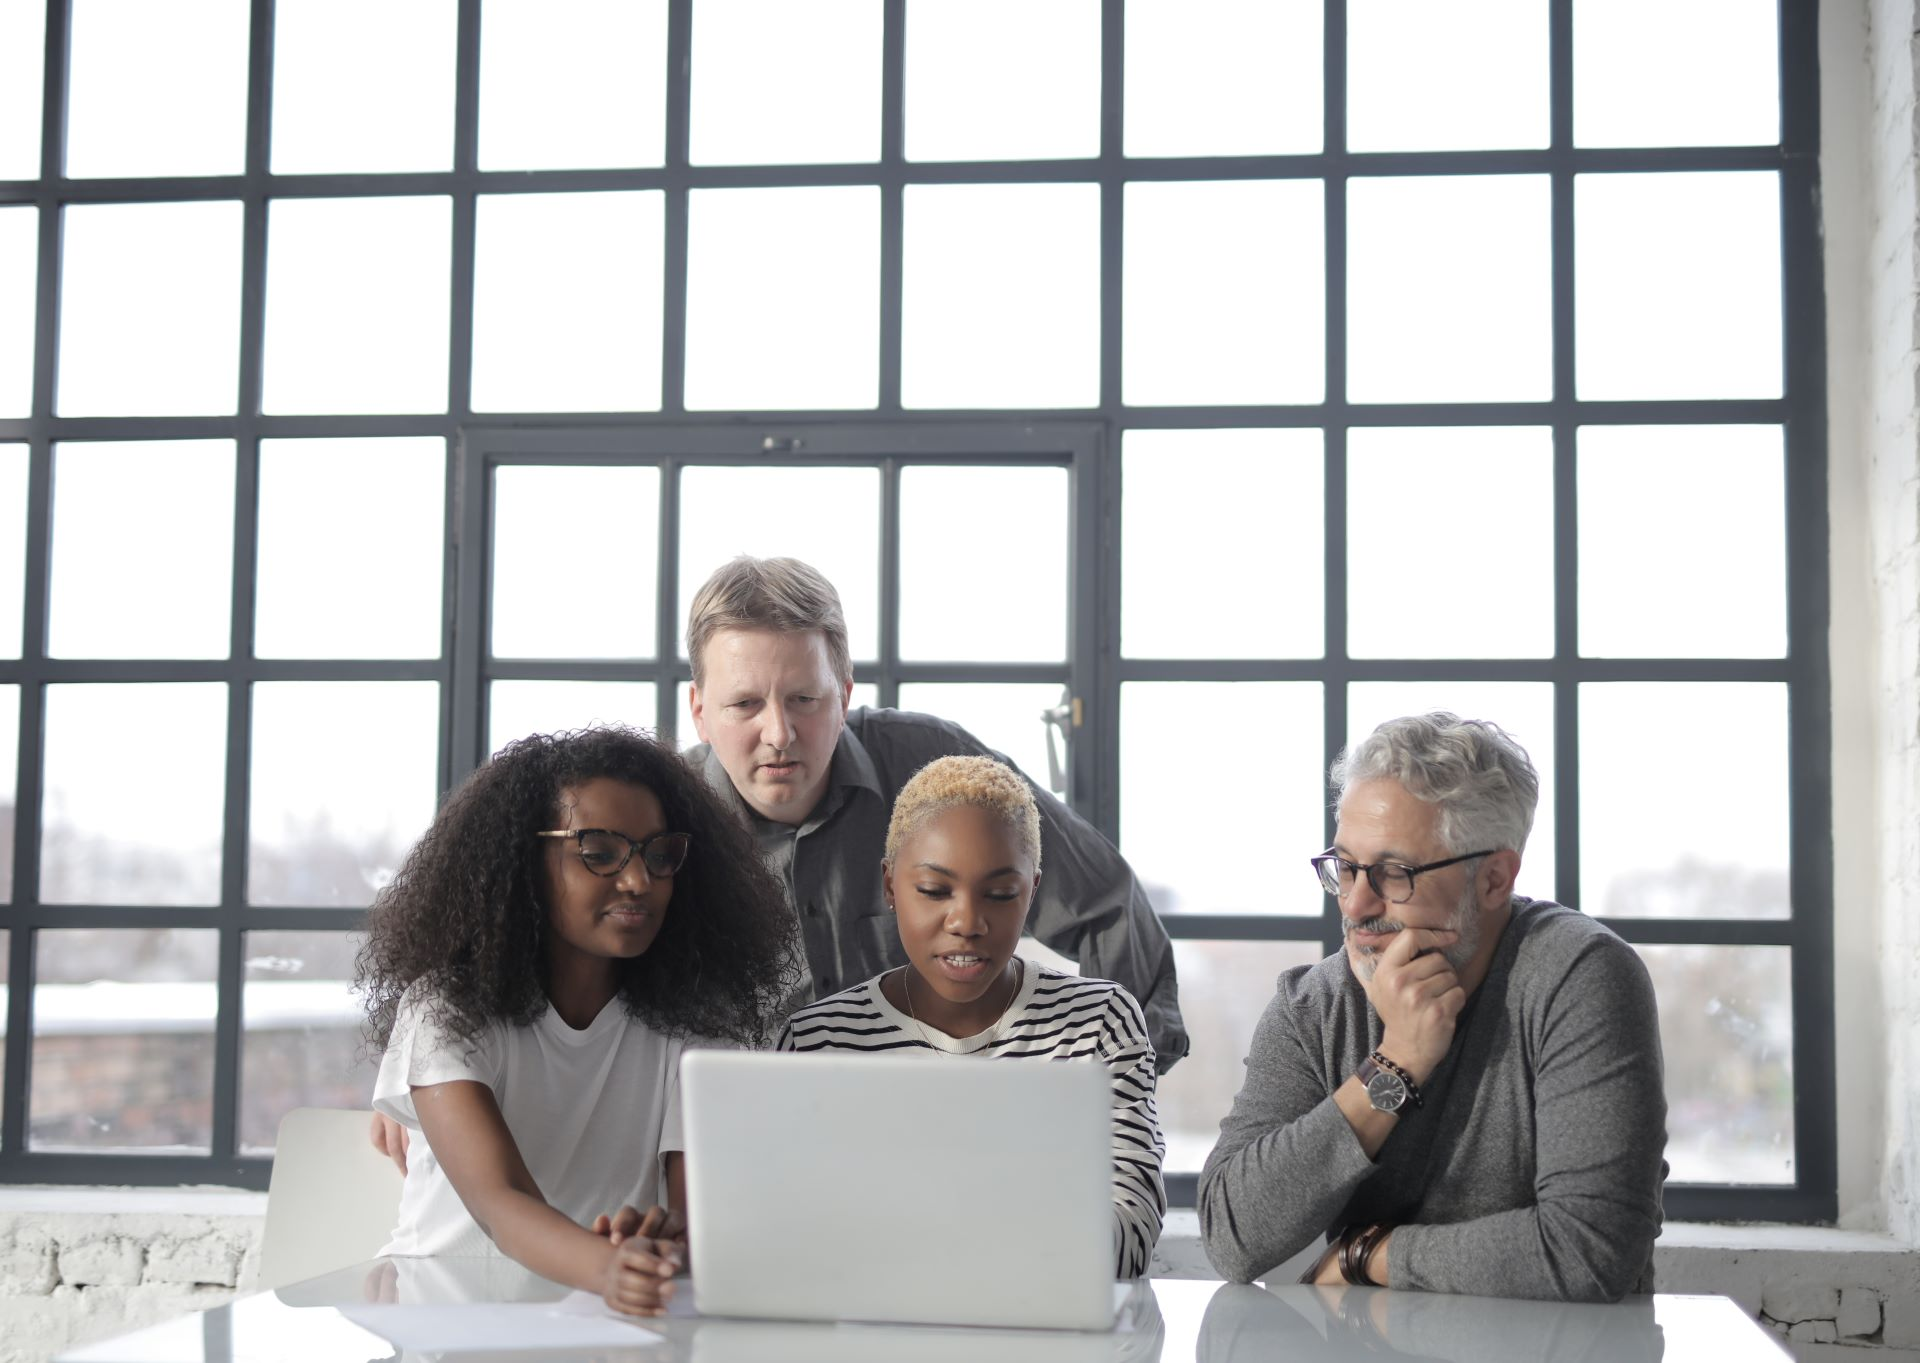 3 Signs To Determine If You Have The Right People Working With you